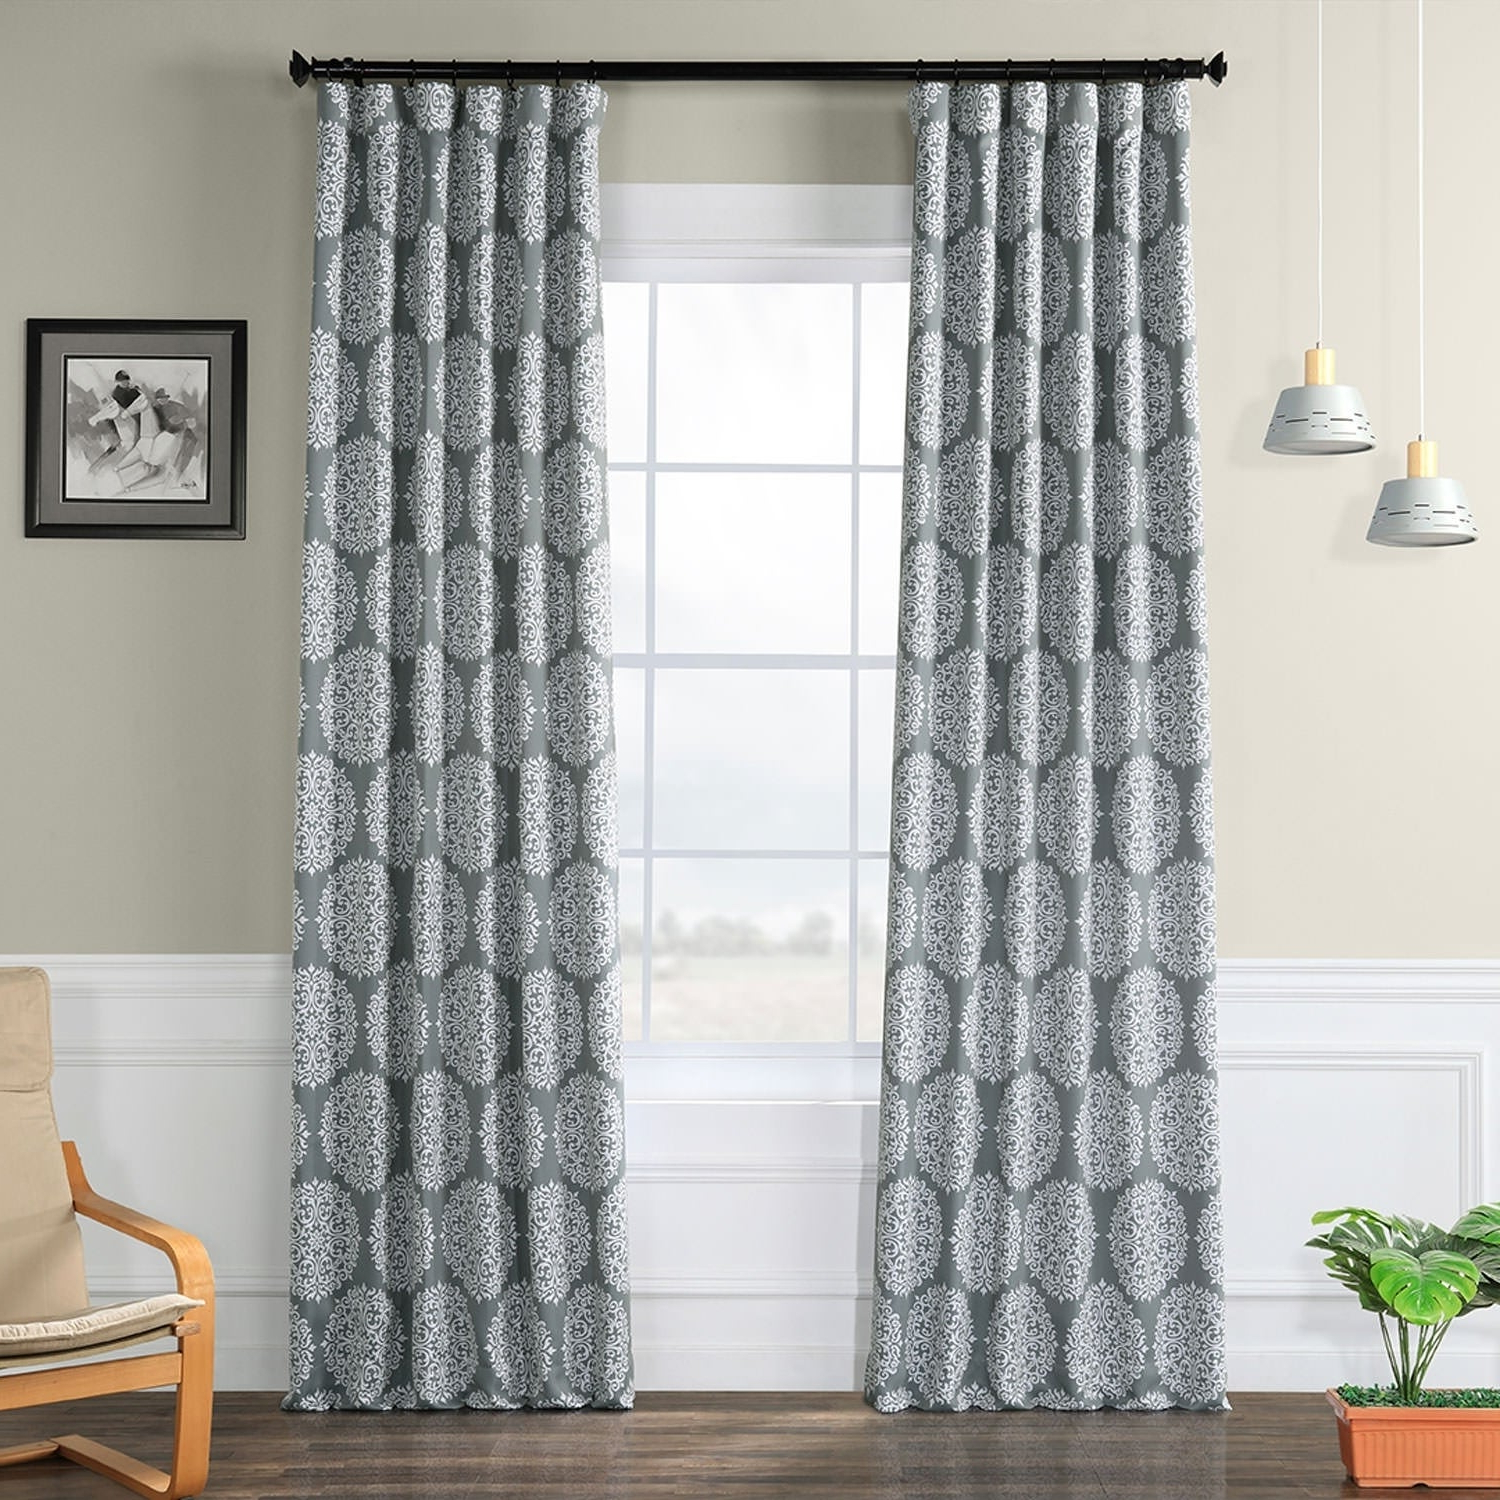 2020 Meridian Blackout Window Curtain Panels Within Exclusive Fabrics Meridian Blackout Curtain Panel Pair (View 16 of 20)